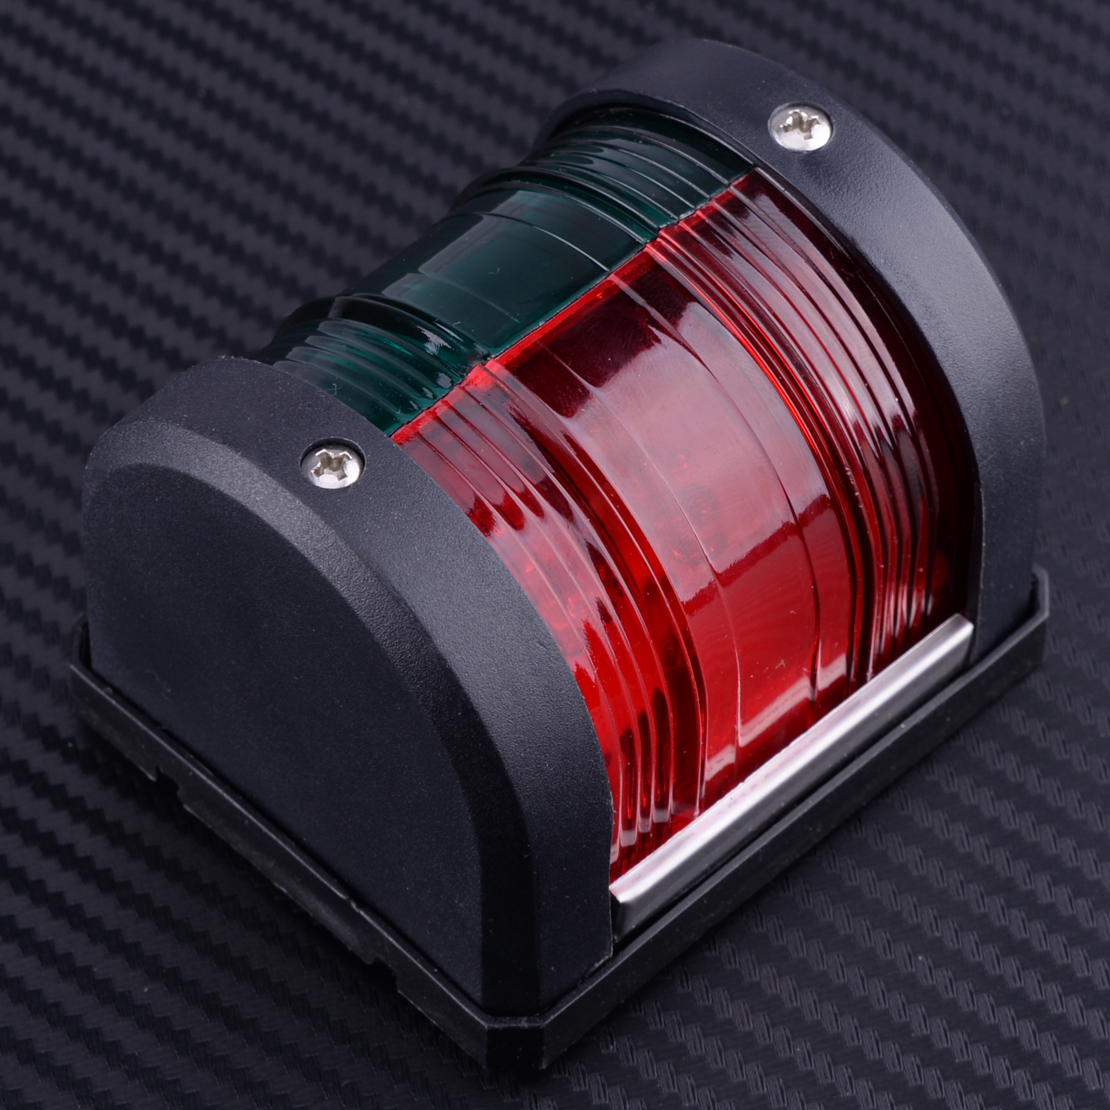 Automobiles & Motorcycles Jeazea 2pcs Dc12v 8w Green Red Marine Navigation Led Light Starboard Port Side Light For Boat Yacht Skeeter Atv,rv,boat & Other Vehicle